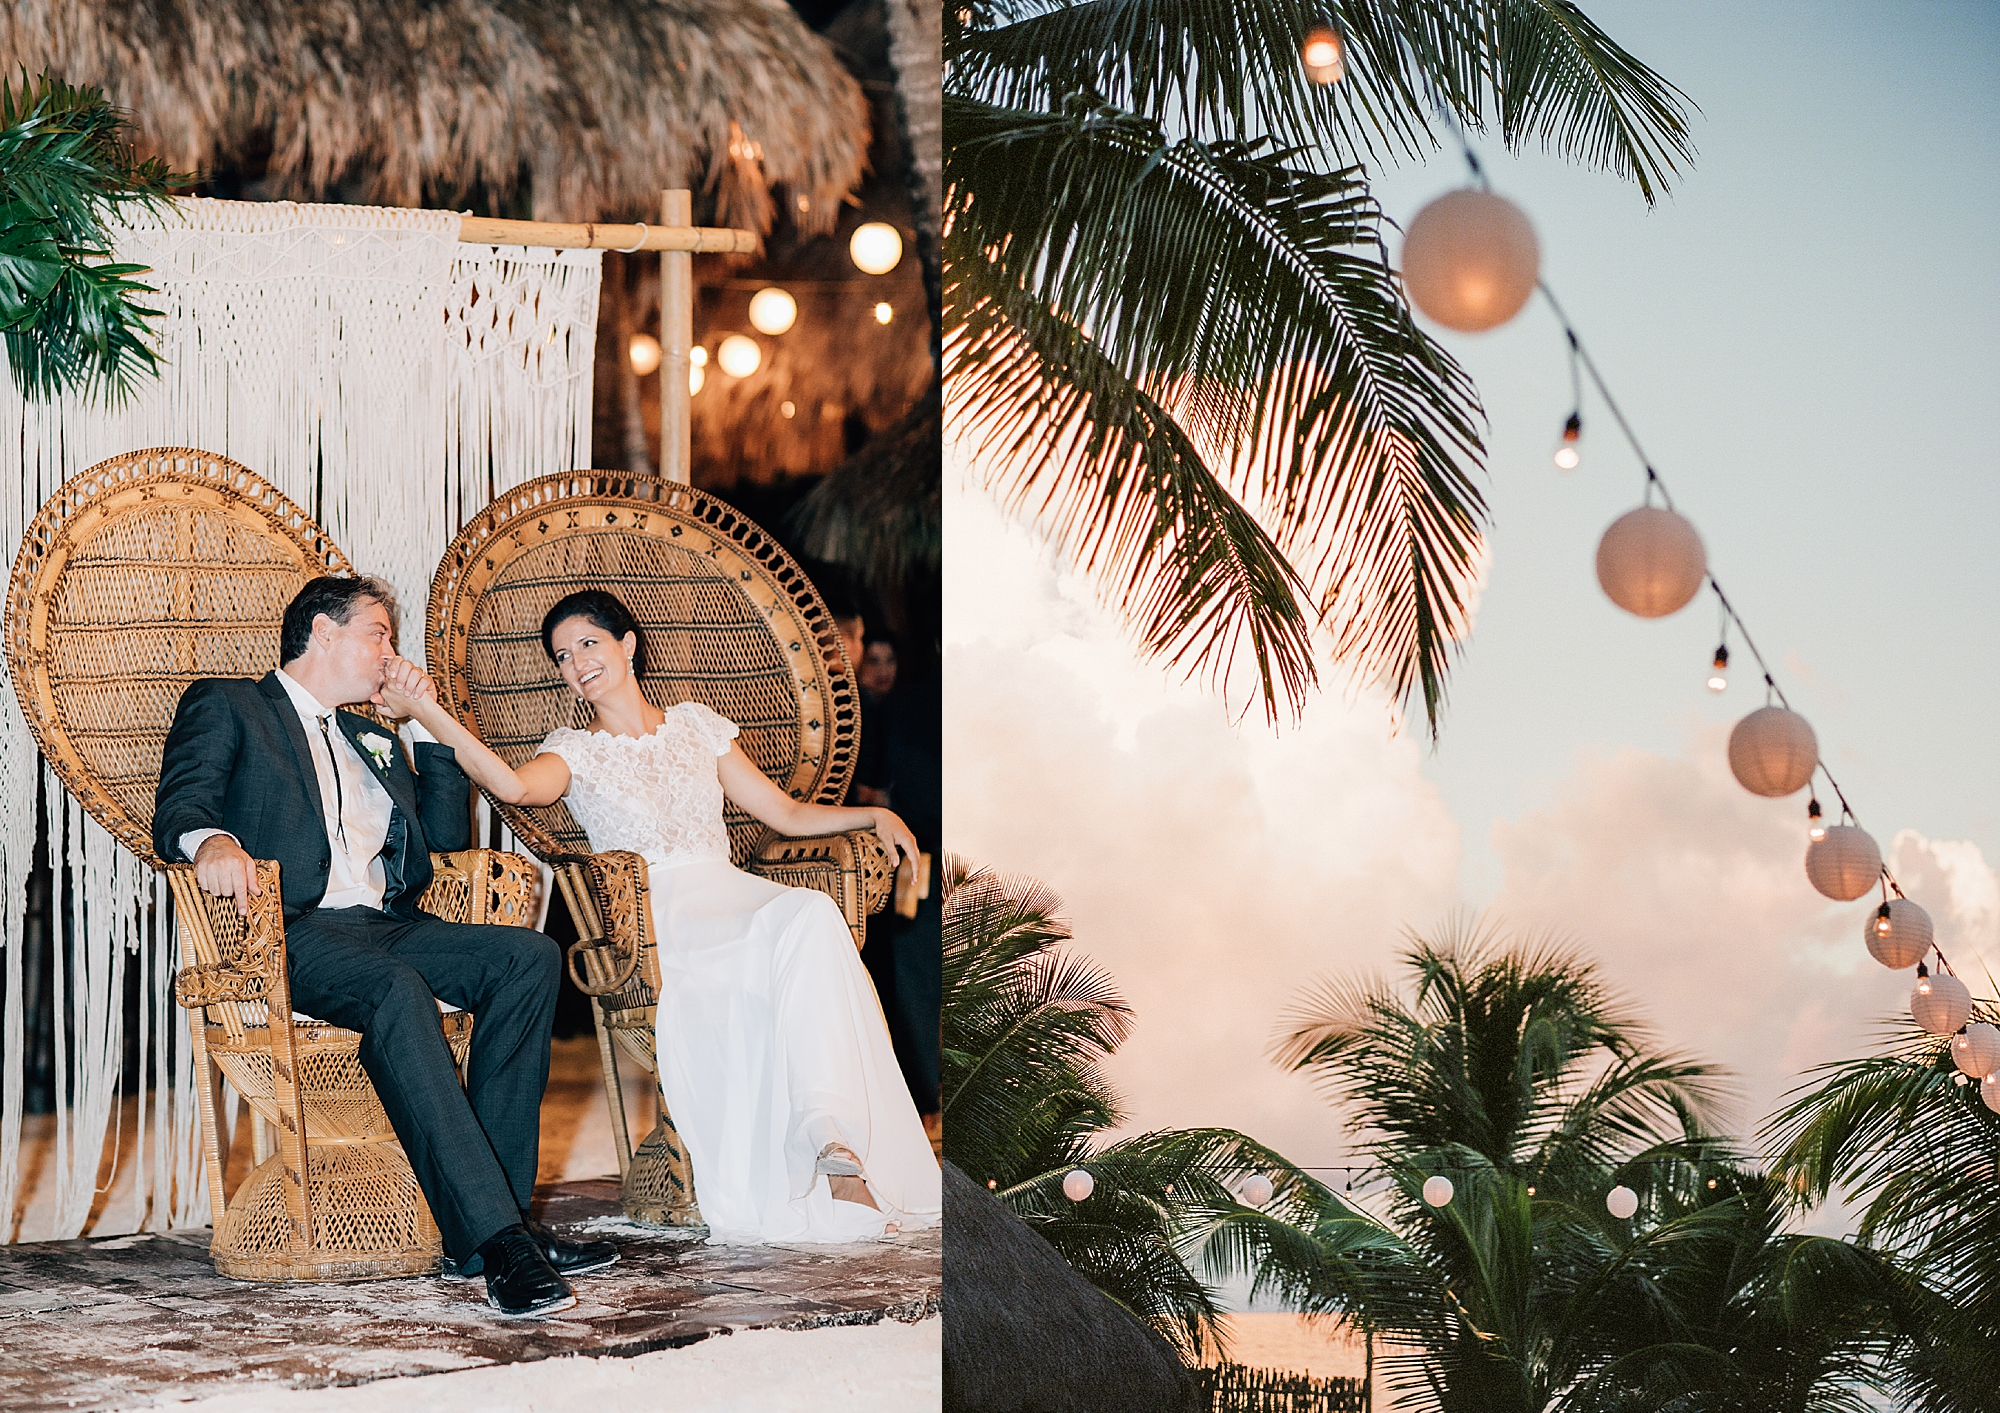 Stylish and Candid Destination Film Wedding Photography in Tulum Mexico by Magdalena Studios 0057